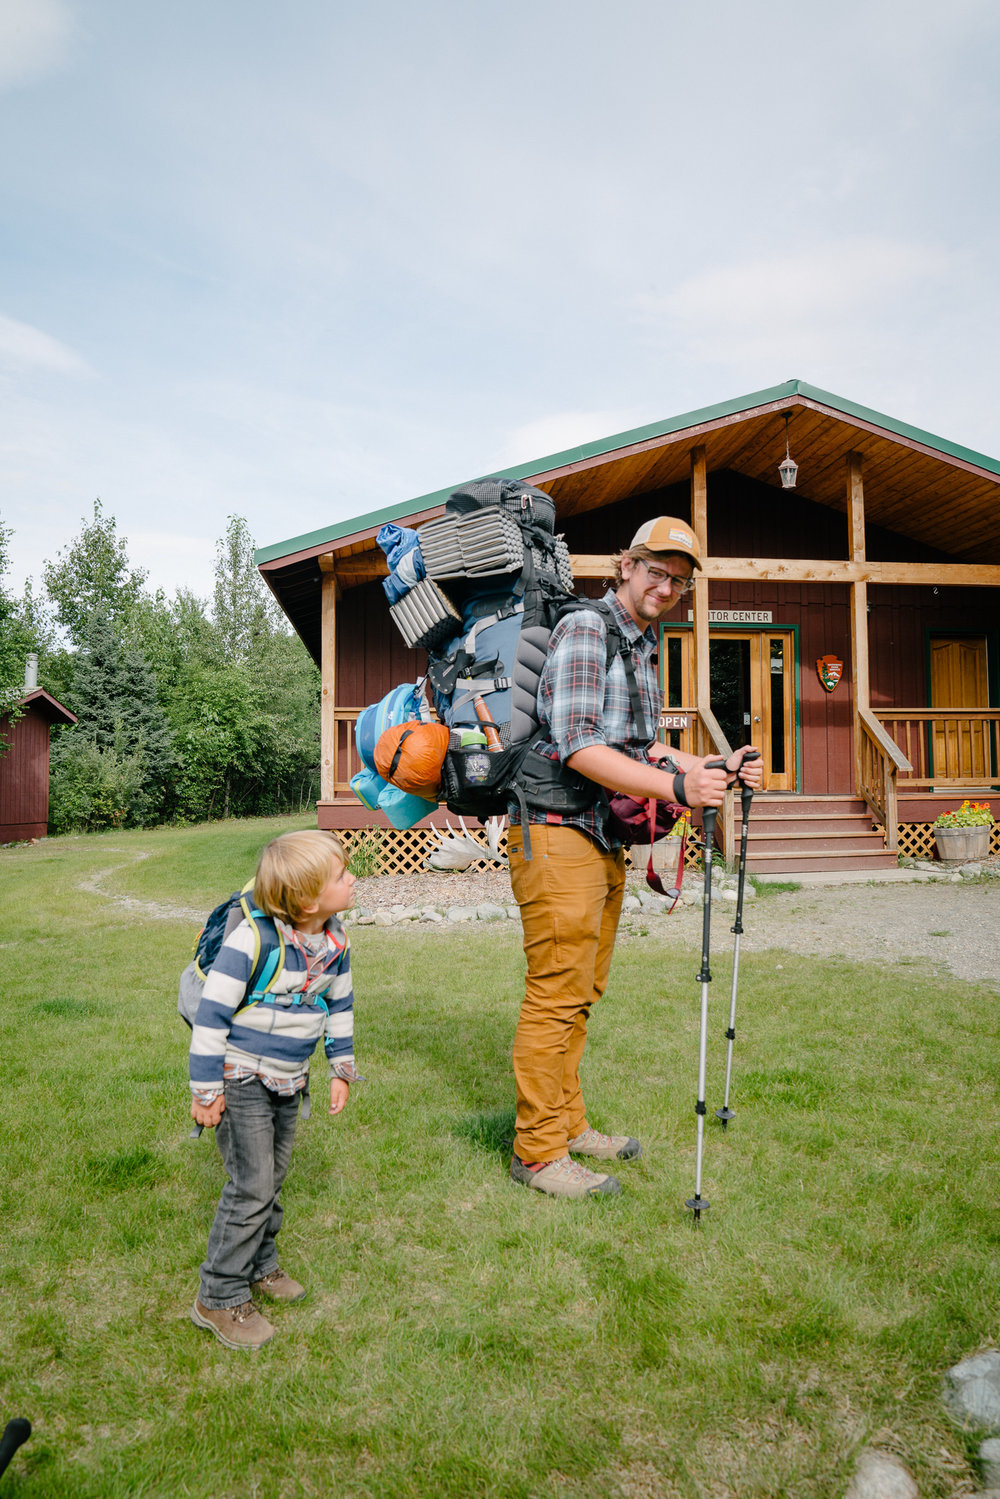 The joys of backpacking with kids: I carry Margi + food, water, and bear canister, David carries everything else. Almost all of our gear is ultralight, and still both packs weighed 50 lbs.